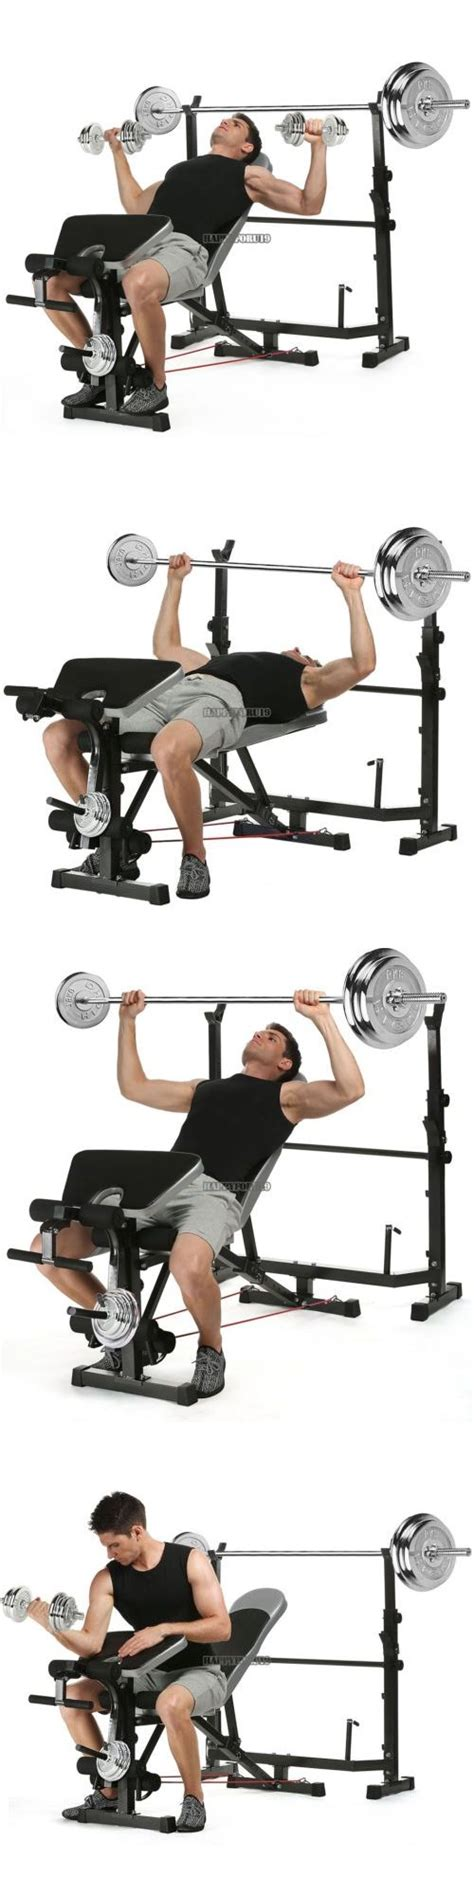 bench press weight sets 1000 ideas about olympic weights on pinterest olympic